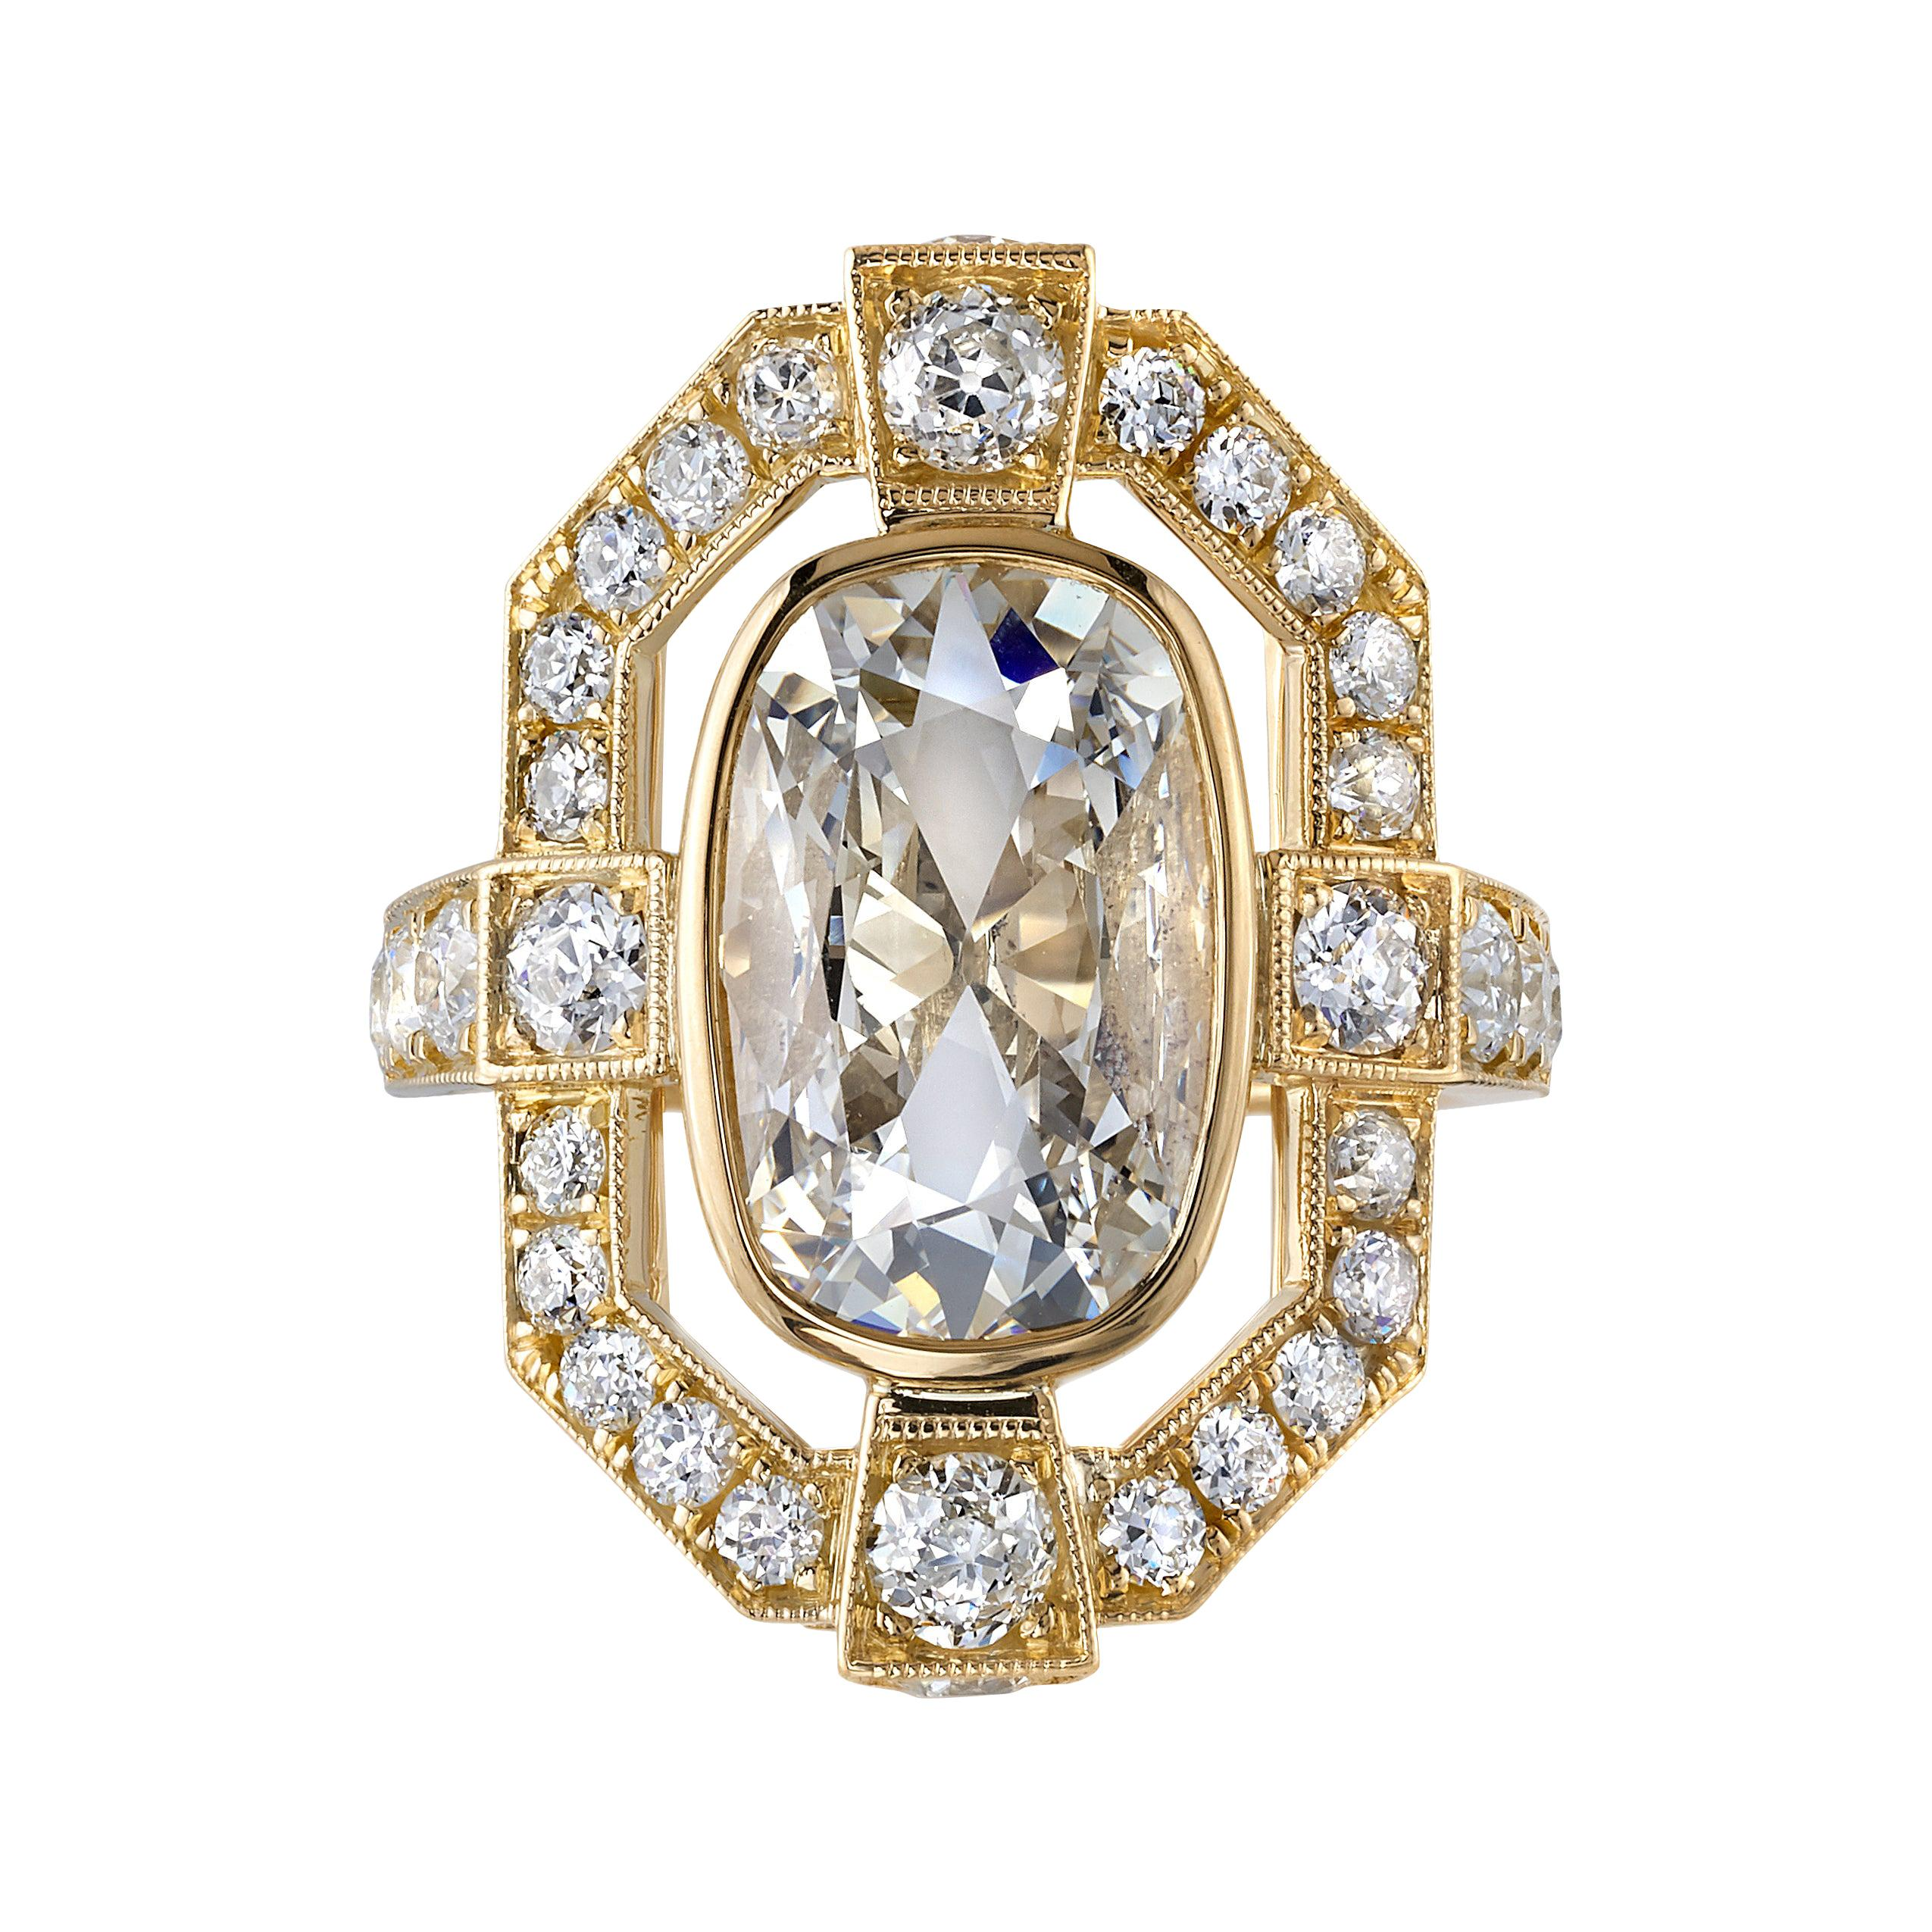 4.02 Carat Cushion Cut Diamond Set in a Handcrafted Yellow Gold Engagement Ring